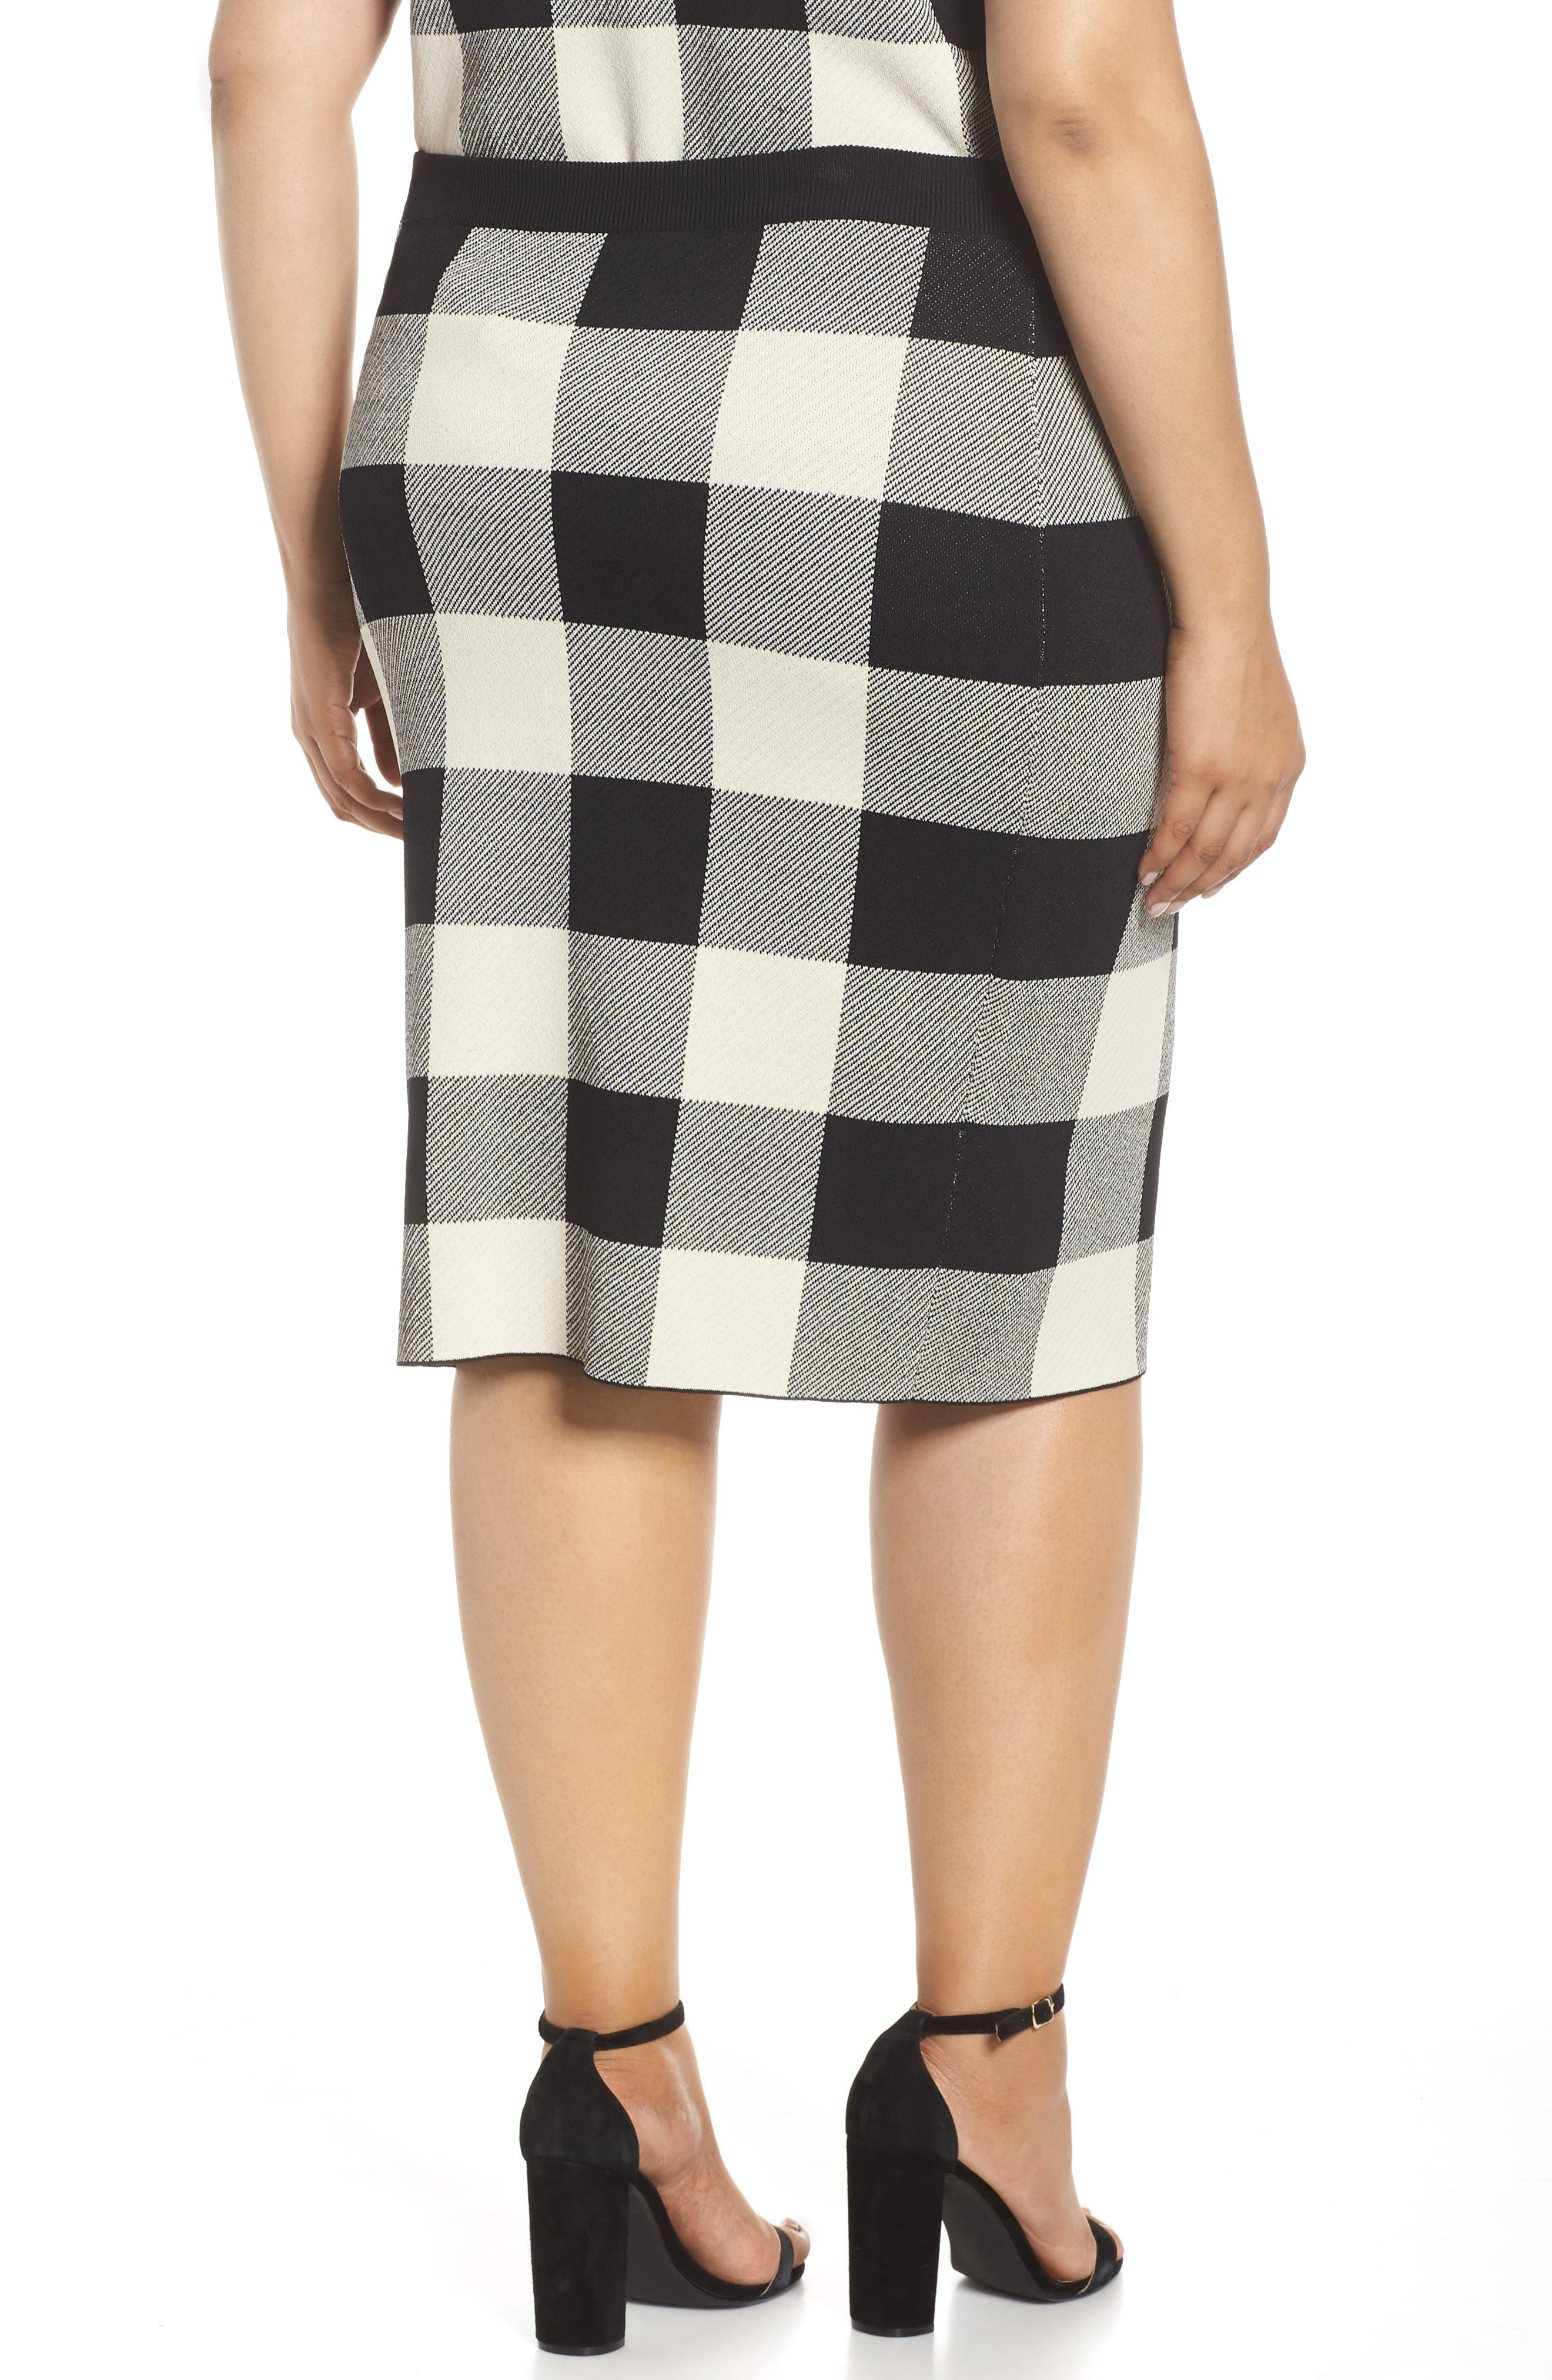 RACHEL RACHEL ROY,                             Raj Sweater Skirt,                             Alternate thumbnail 2, color,                             BLACK/CREAM